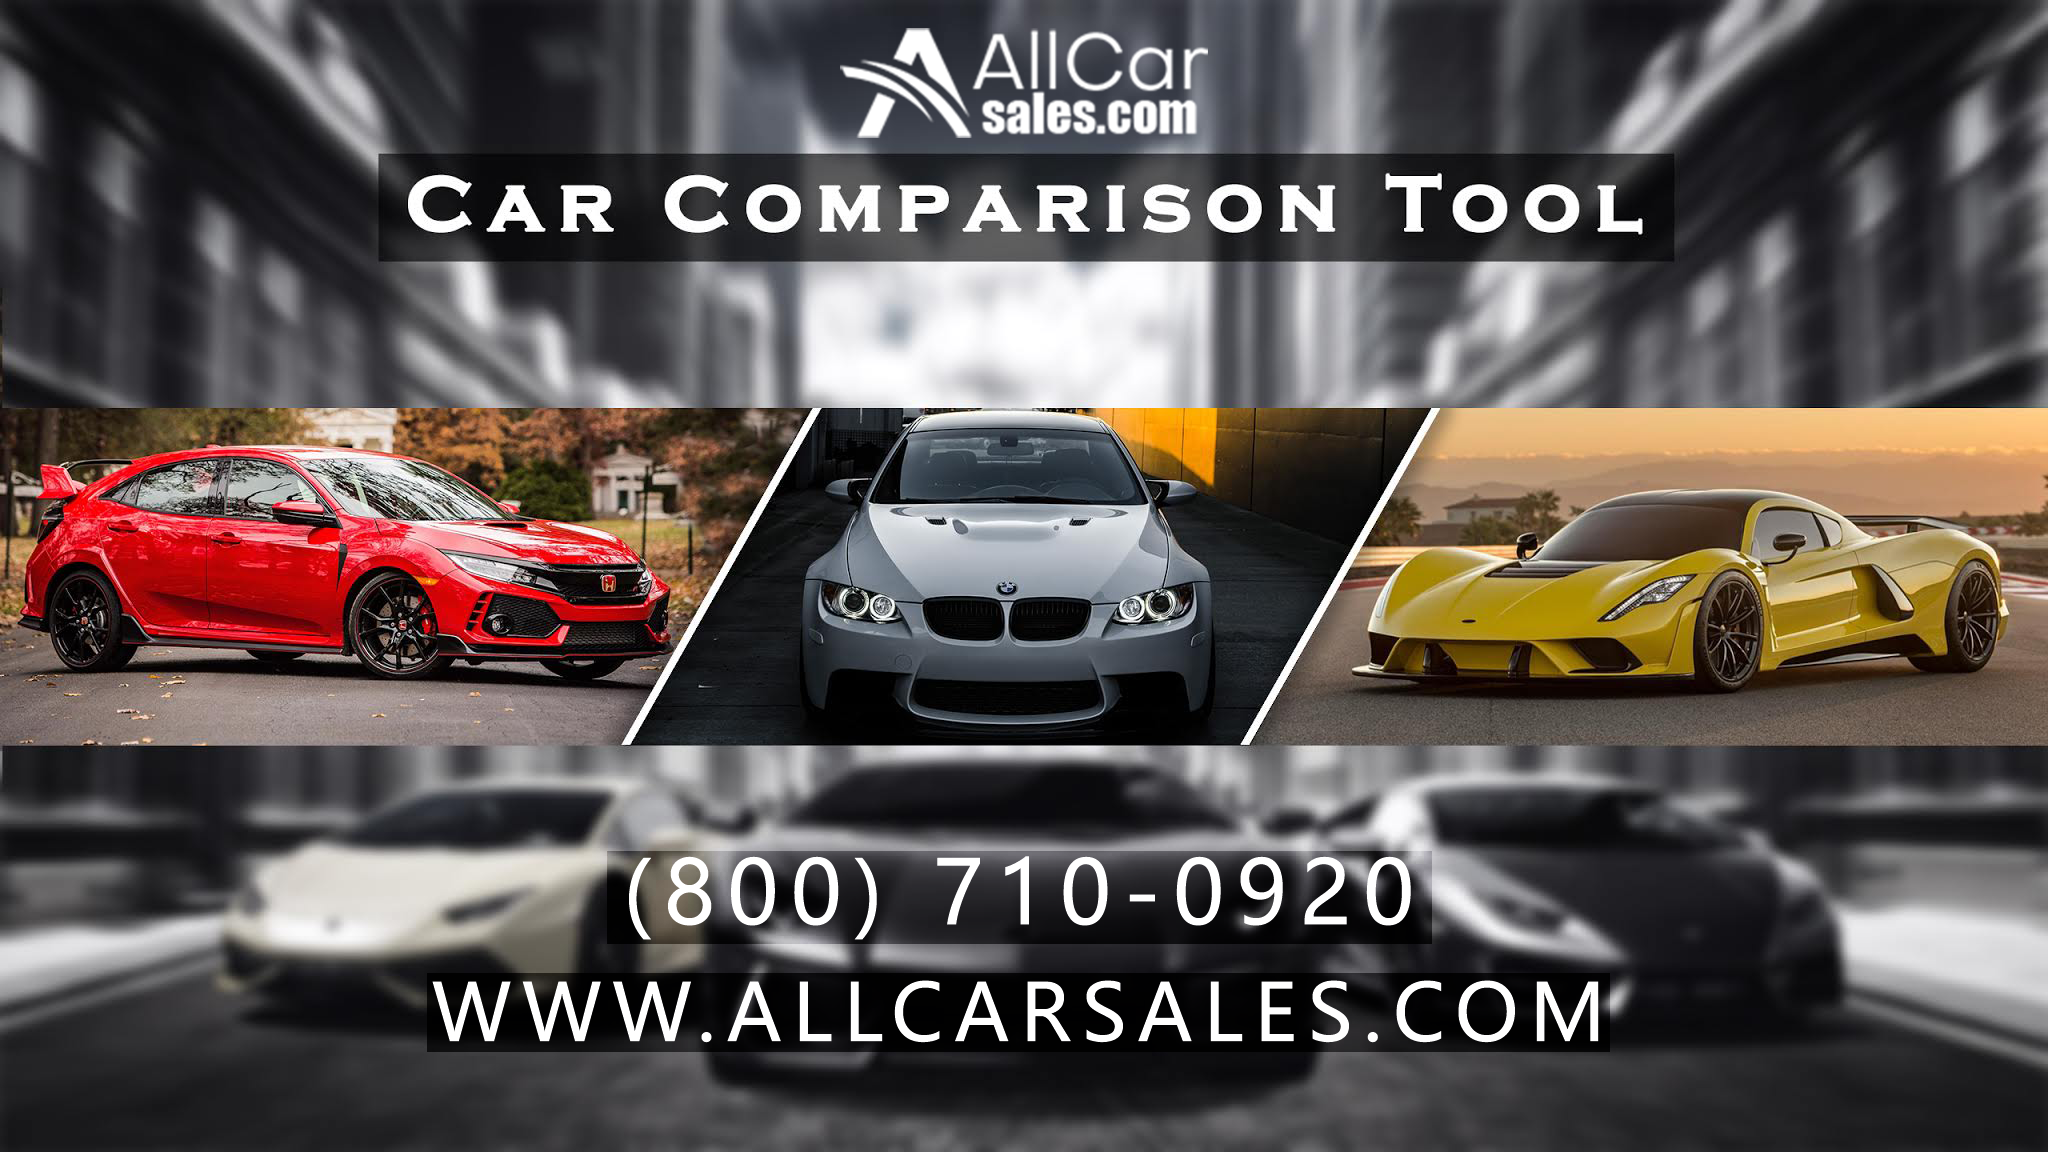 Compare Cars By Using Car Comparison Tool All Car Sales By All Car Sales Medium